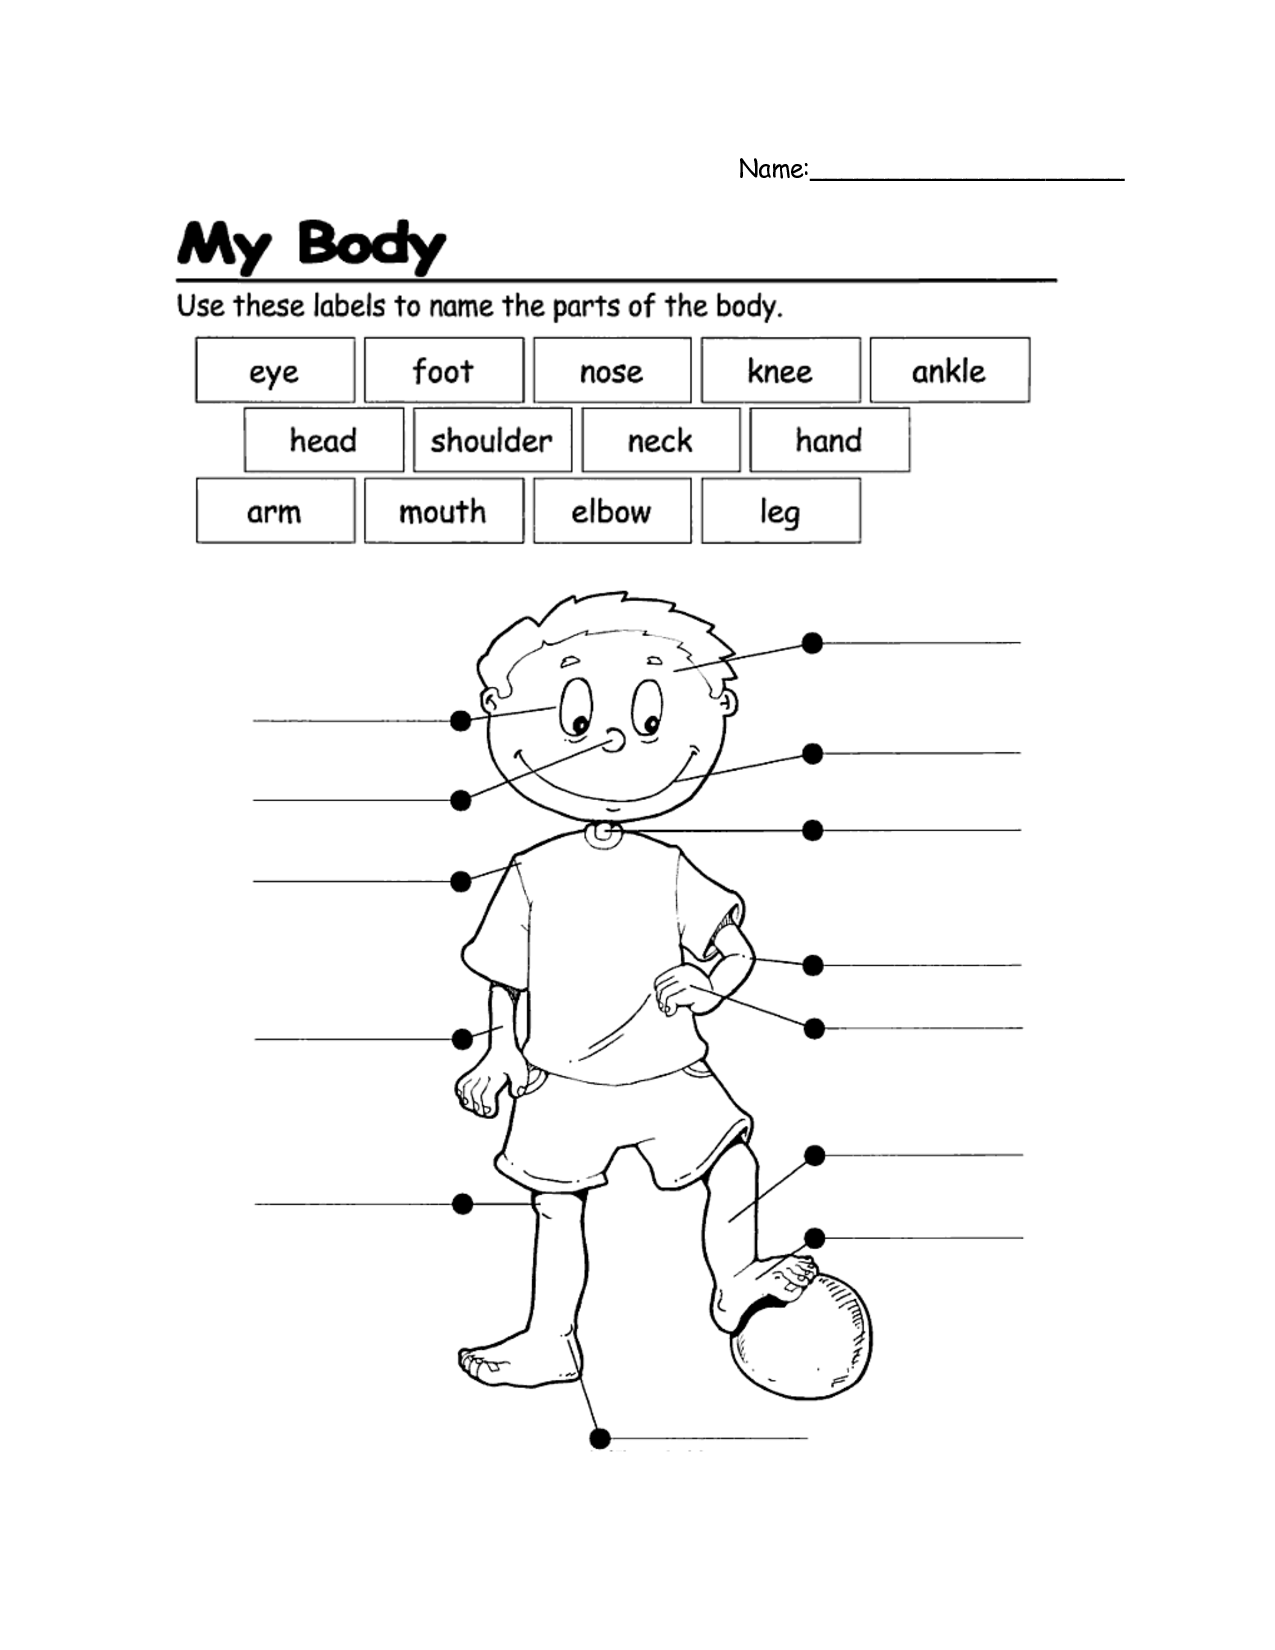 21 awesome label the parts of the body worksheet for kids body pinterest worksheets image. Black Bedroom Furniture Sets. Home Design Ideas